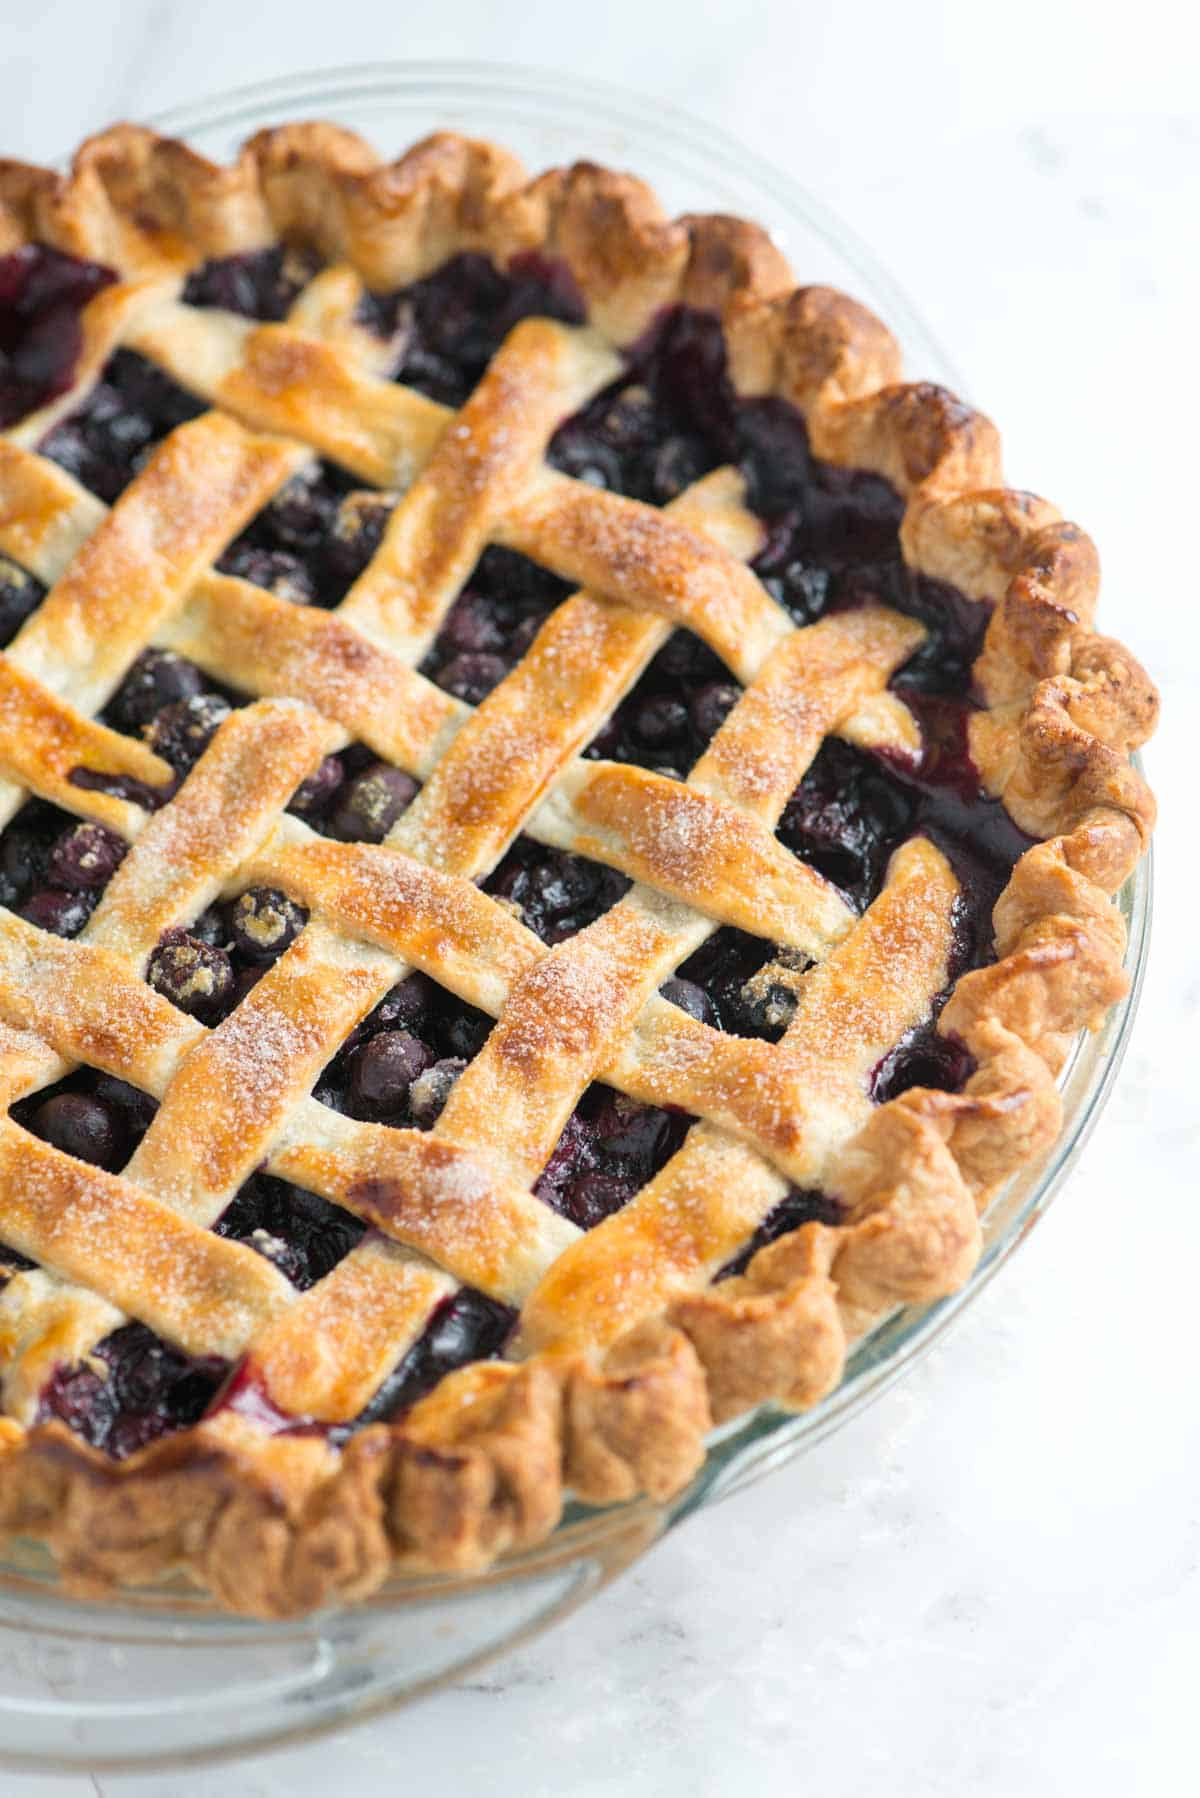 Easy Homemade Blueberry Pie Recipe - Toss, Fill and Bake